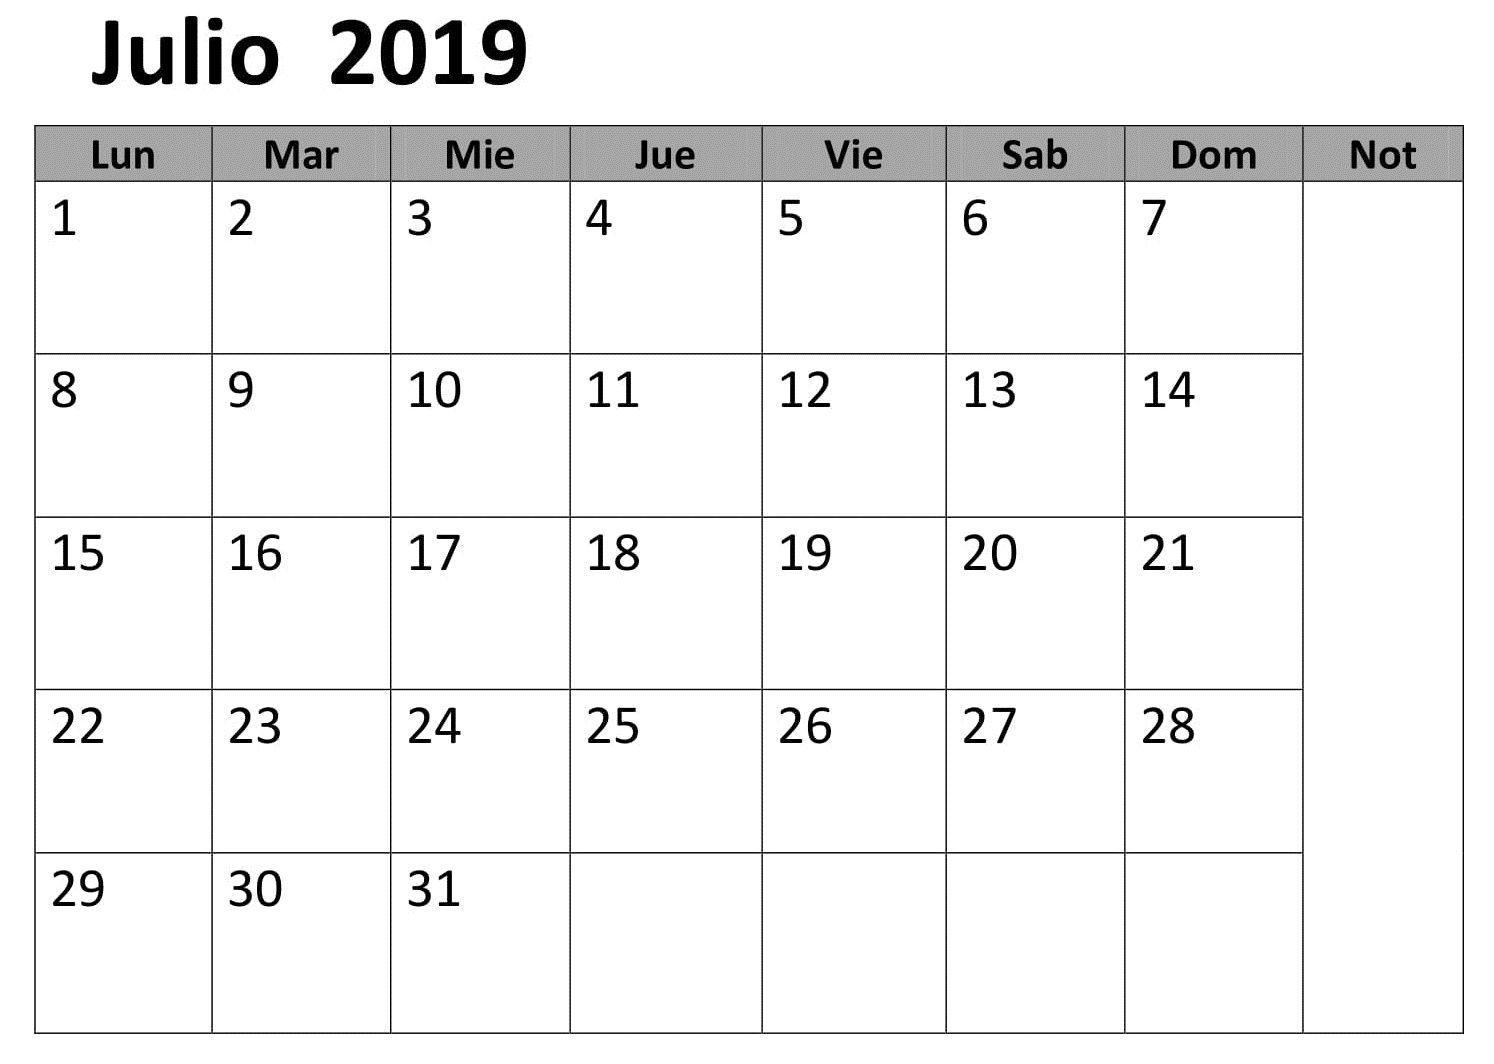 Calendario 2019 Julio.Calendario 2019 Julio Para Imprimir Word Calendario Julio